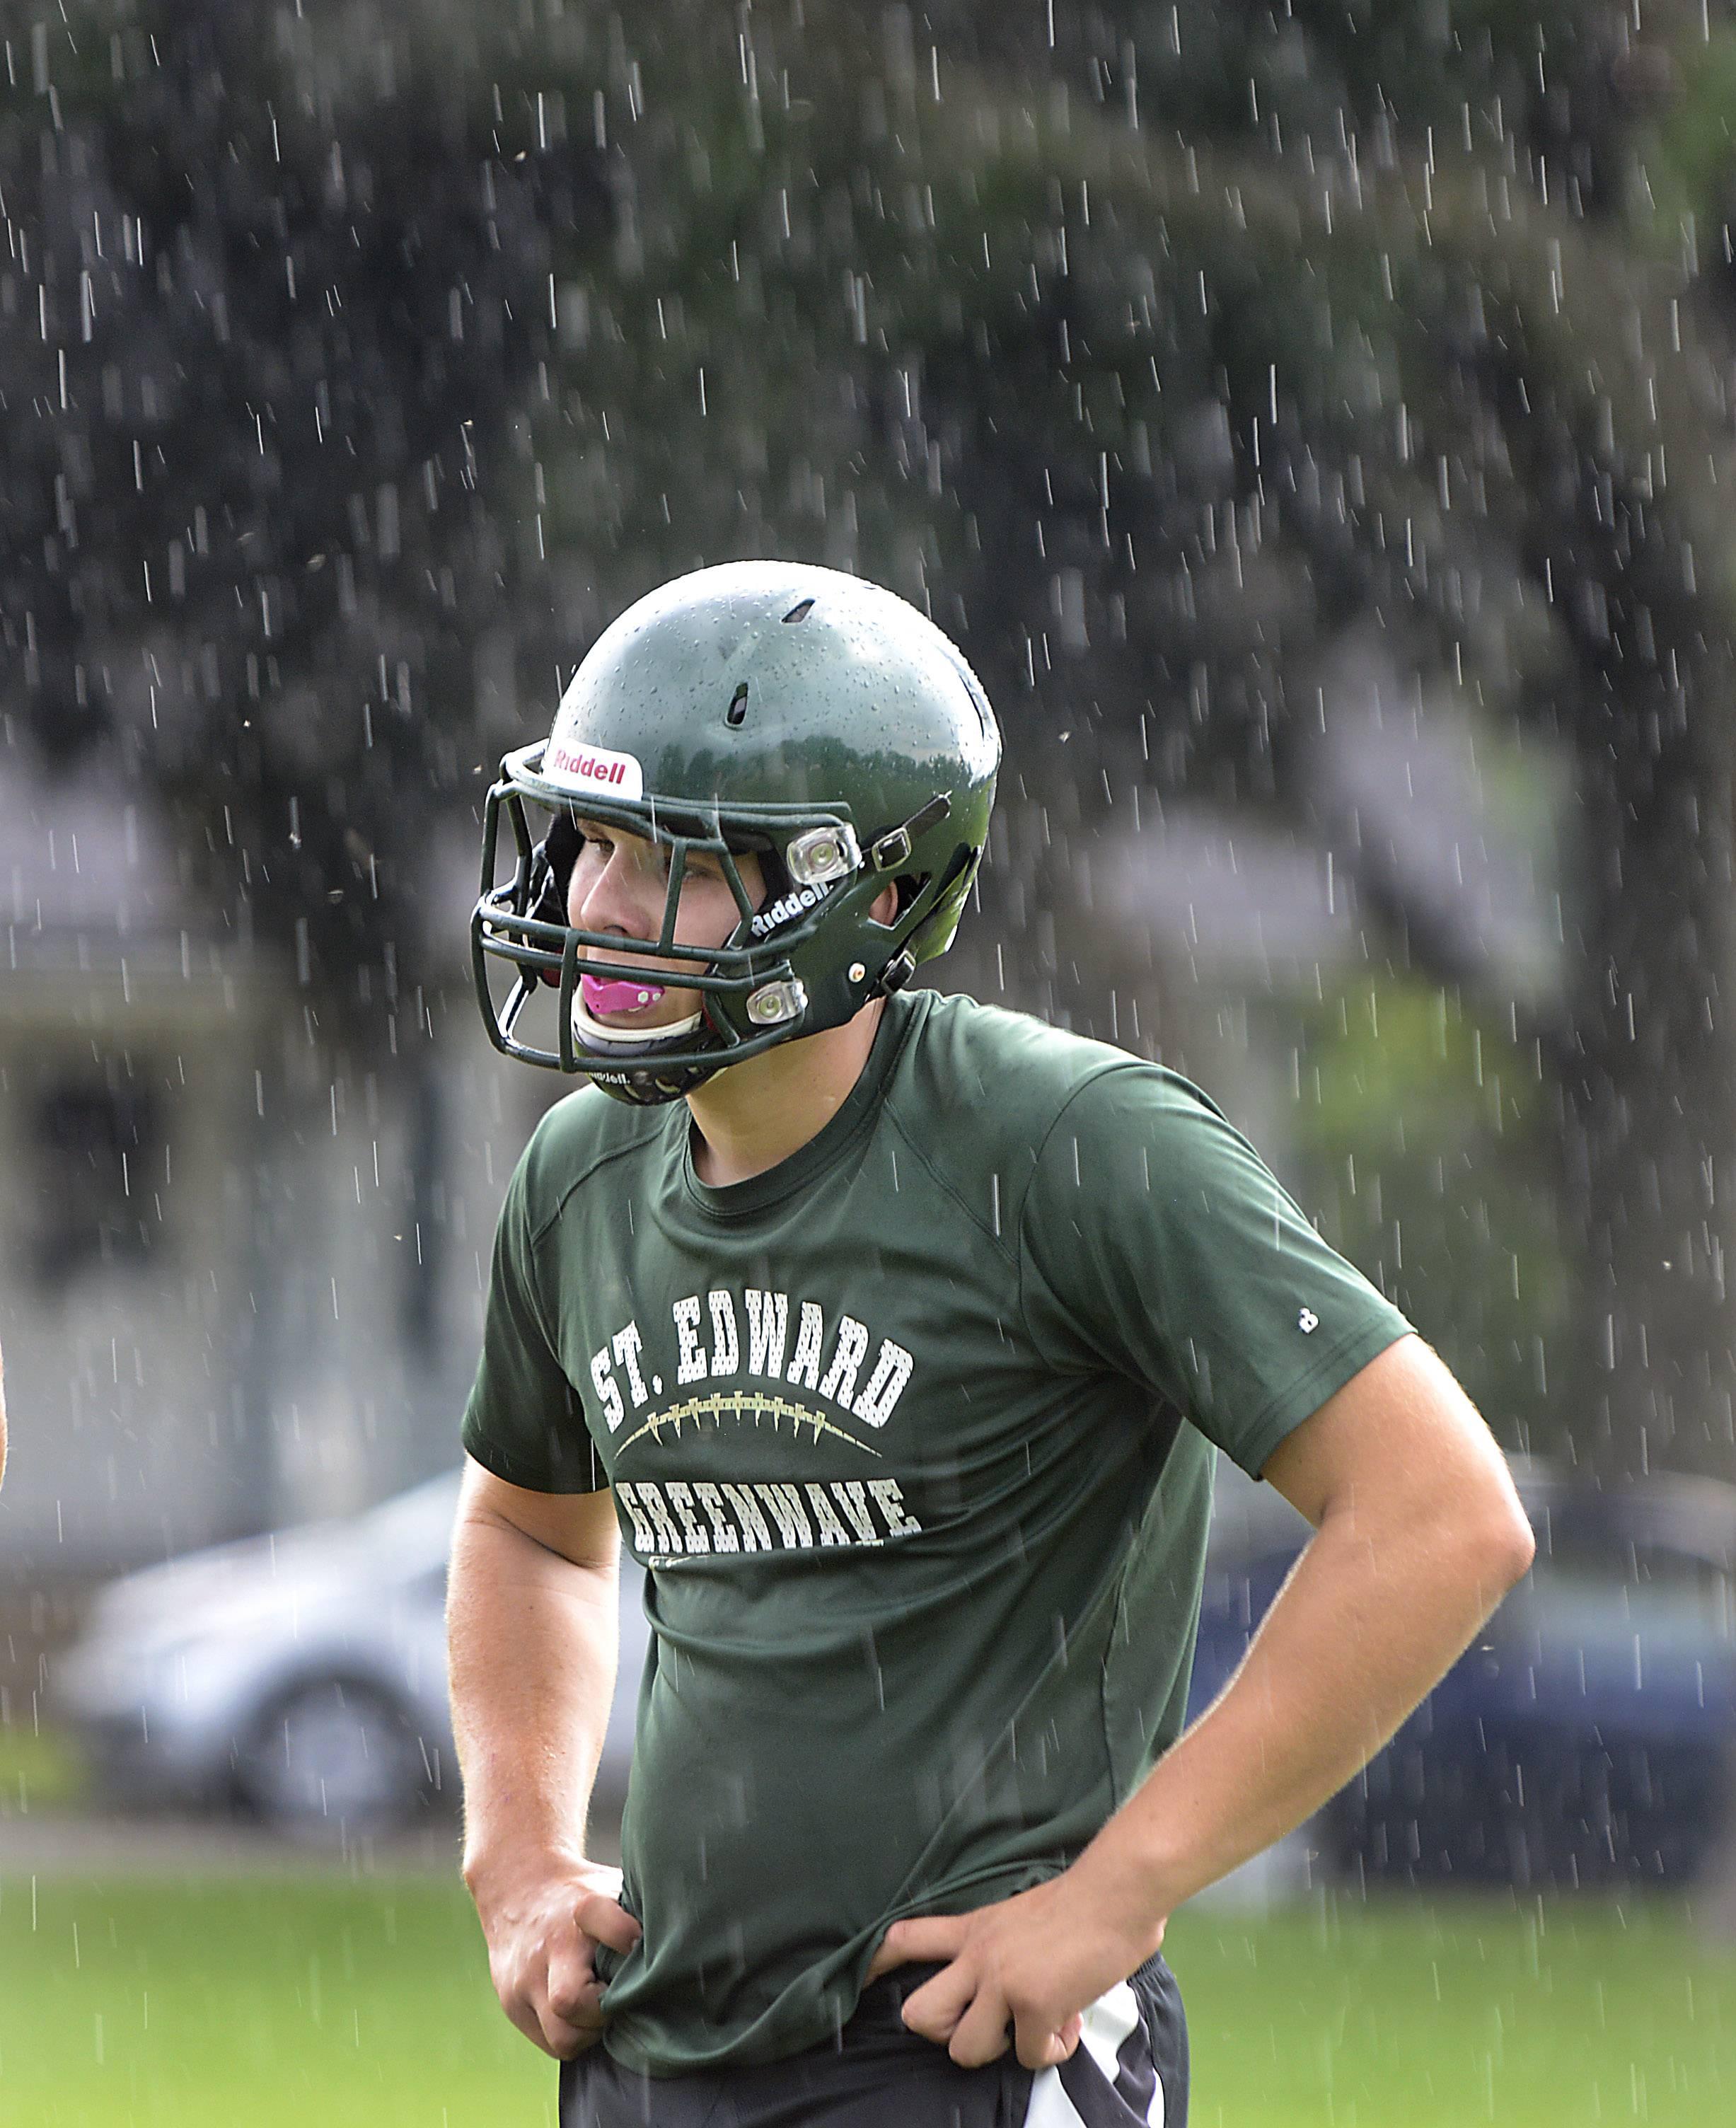 Brandon Ostrander stands in the cooling rain during a St. Edward practice.